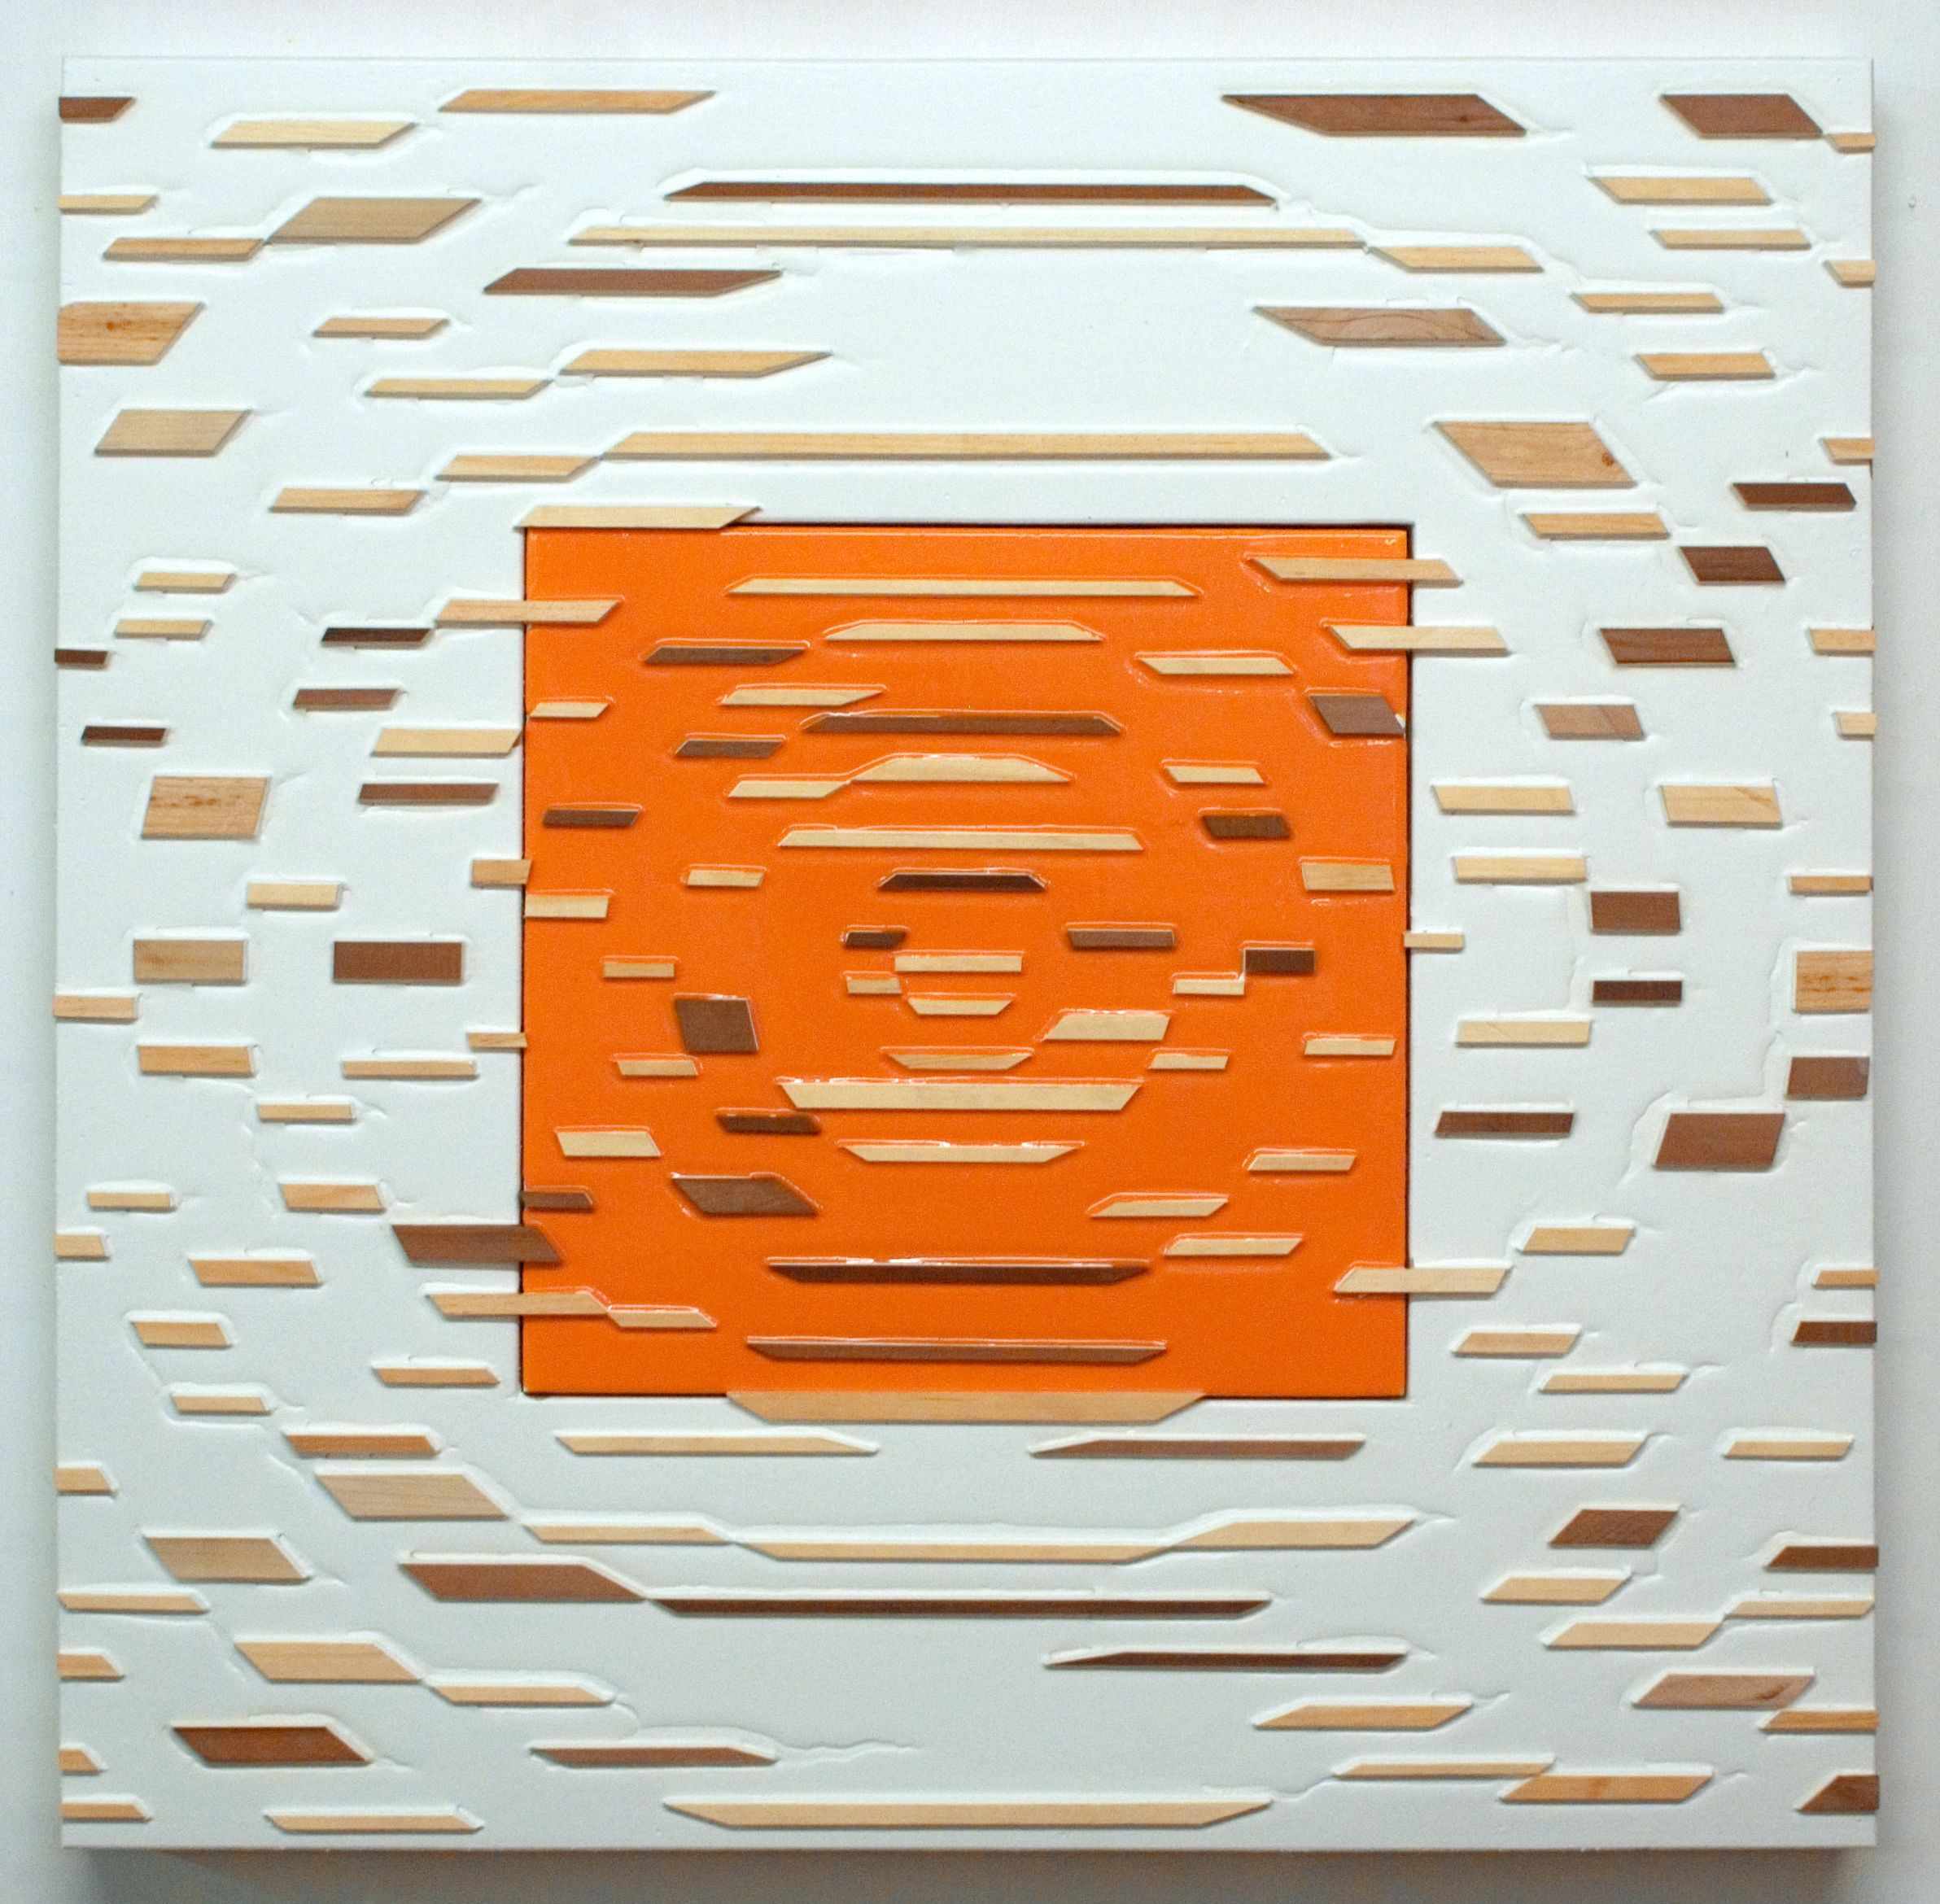 'Spigot' Poured acrylic paint and wood on panel, 36 x 36 in, 2011